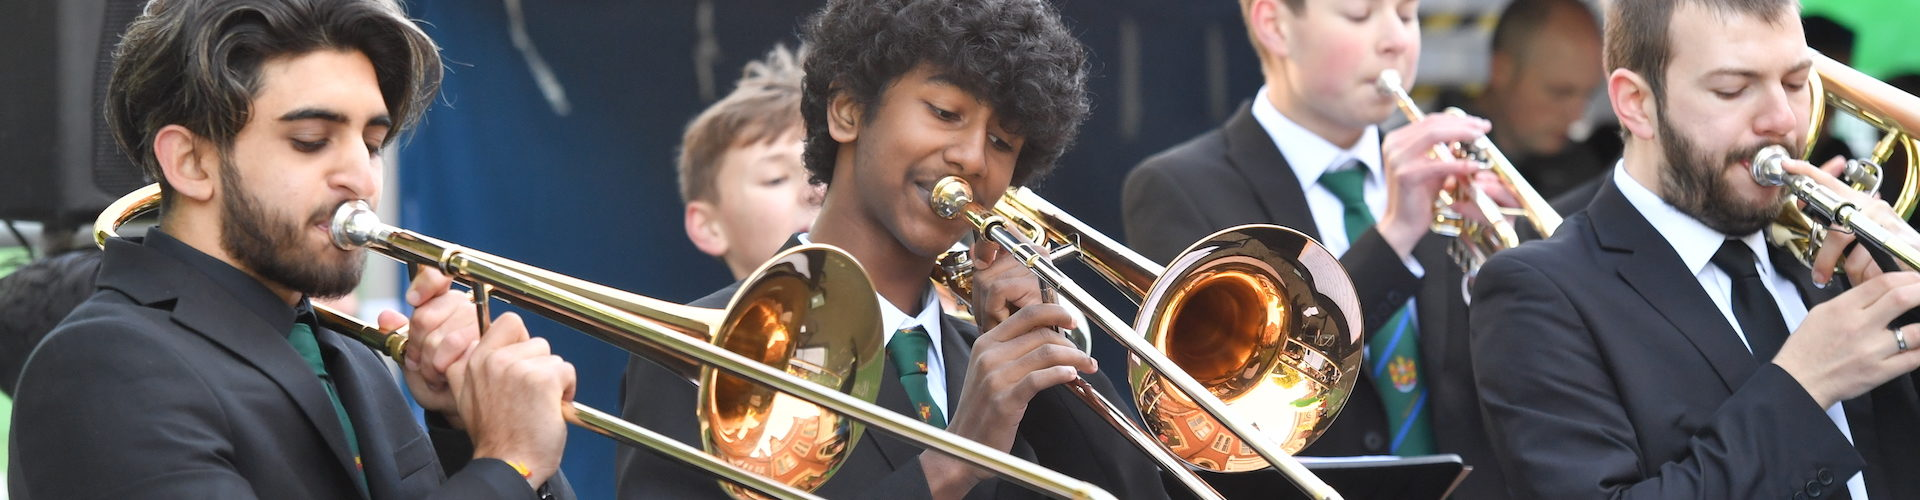 School children play brass instruments during the Tour of Britain.